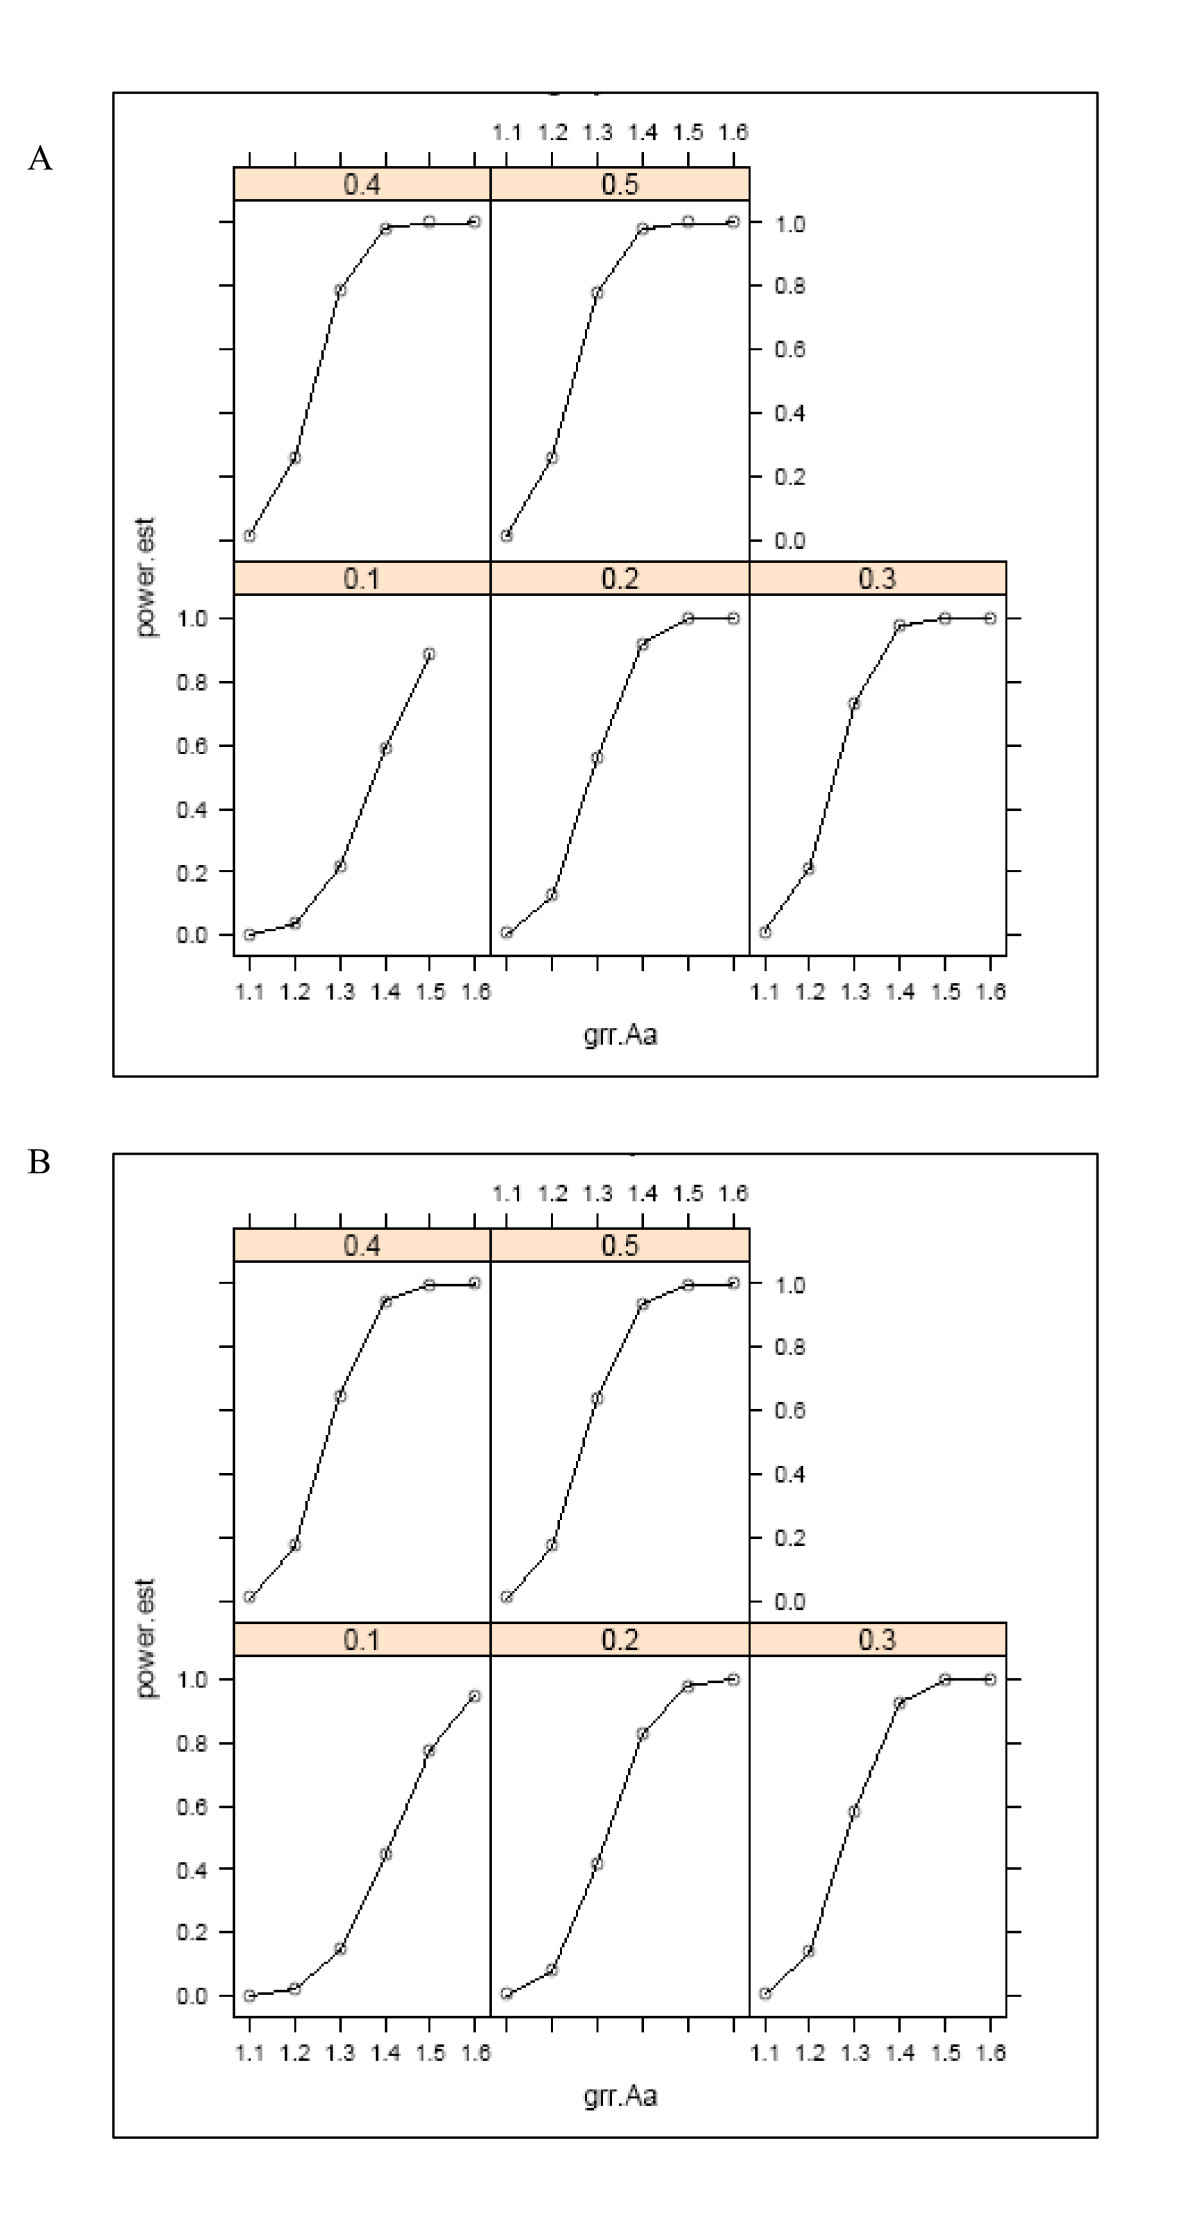 https://static-content.springer.com/image/art%3A10.1186%2F1472-6831-8-18/MediaObjects/12903_2008_Article_93_Fig1_HTML.jpg